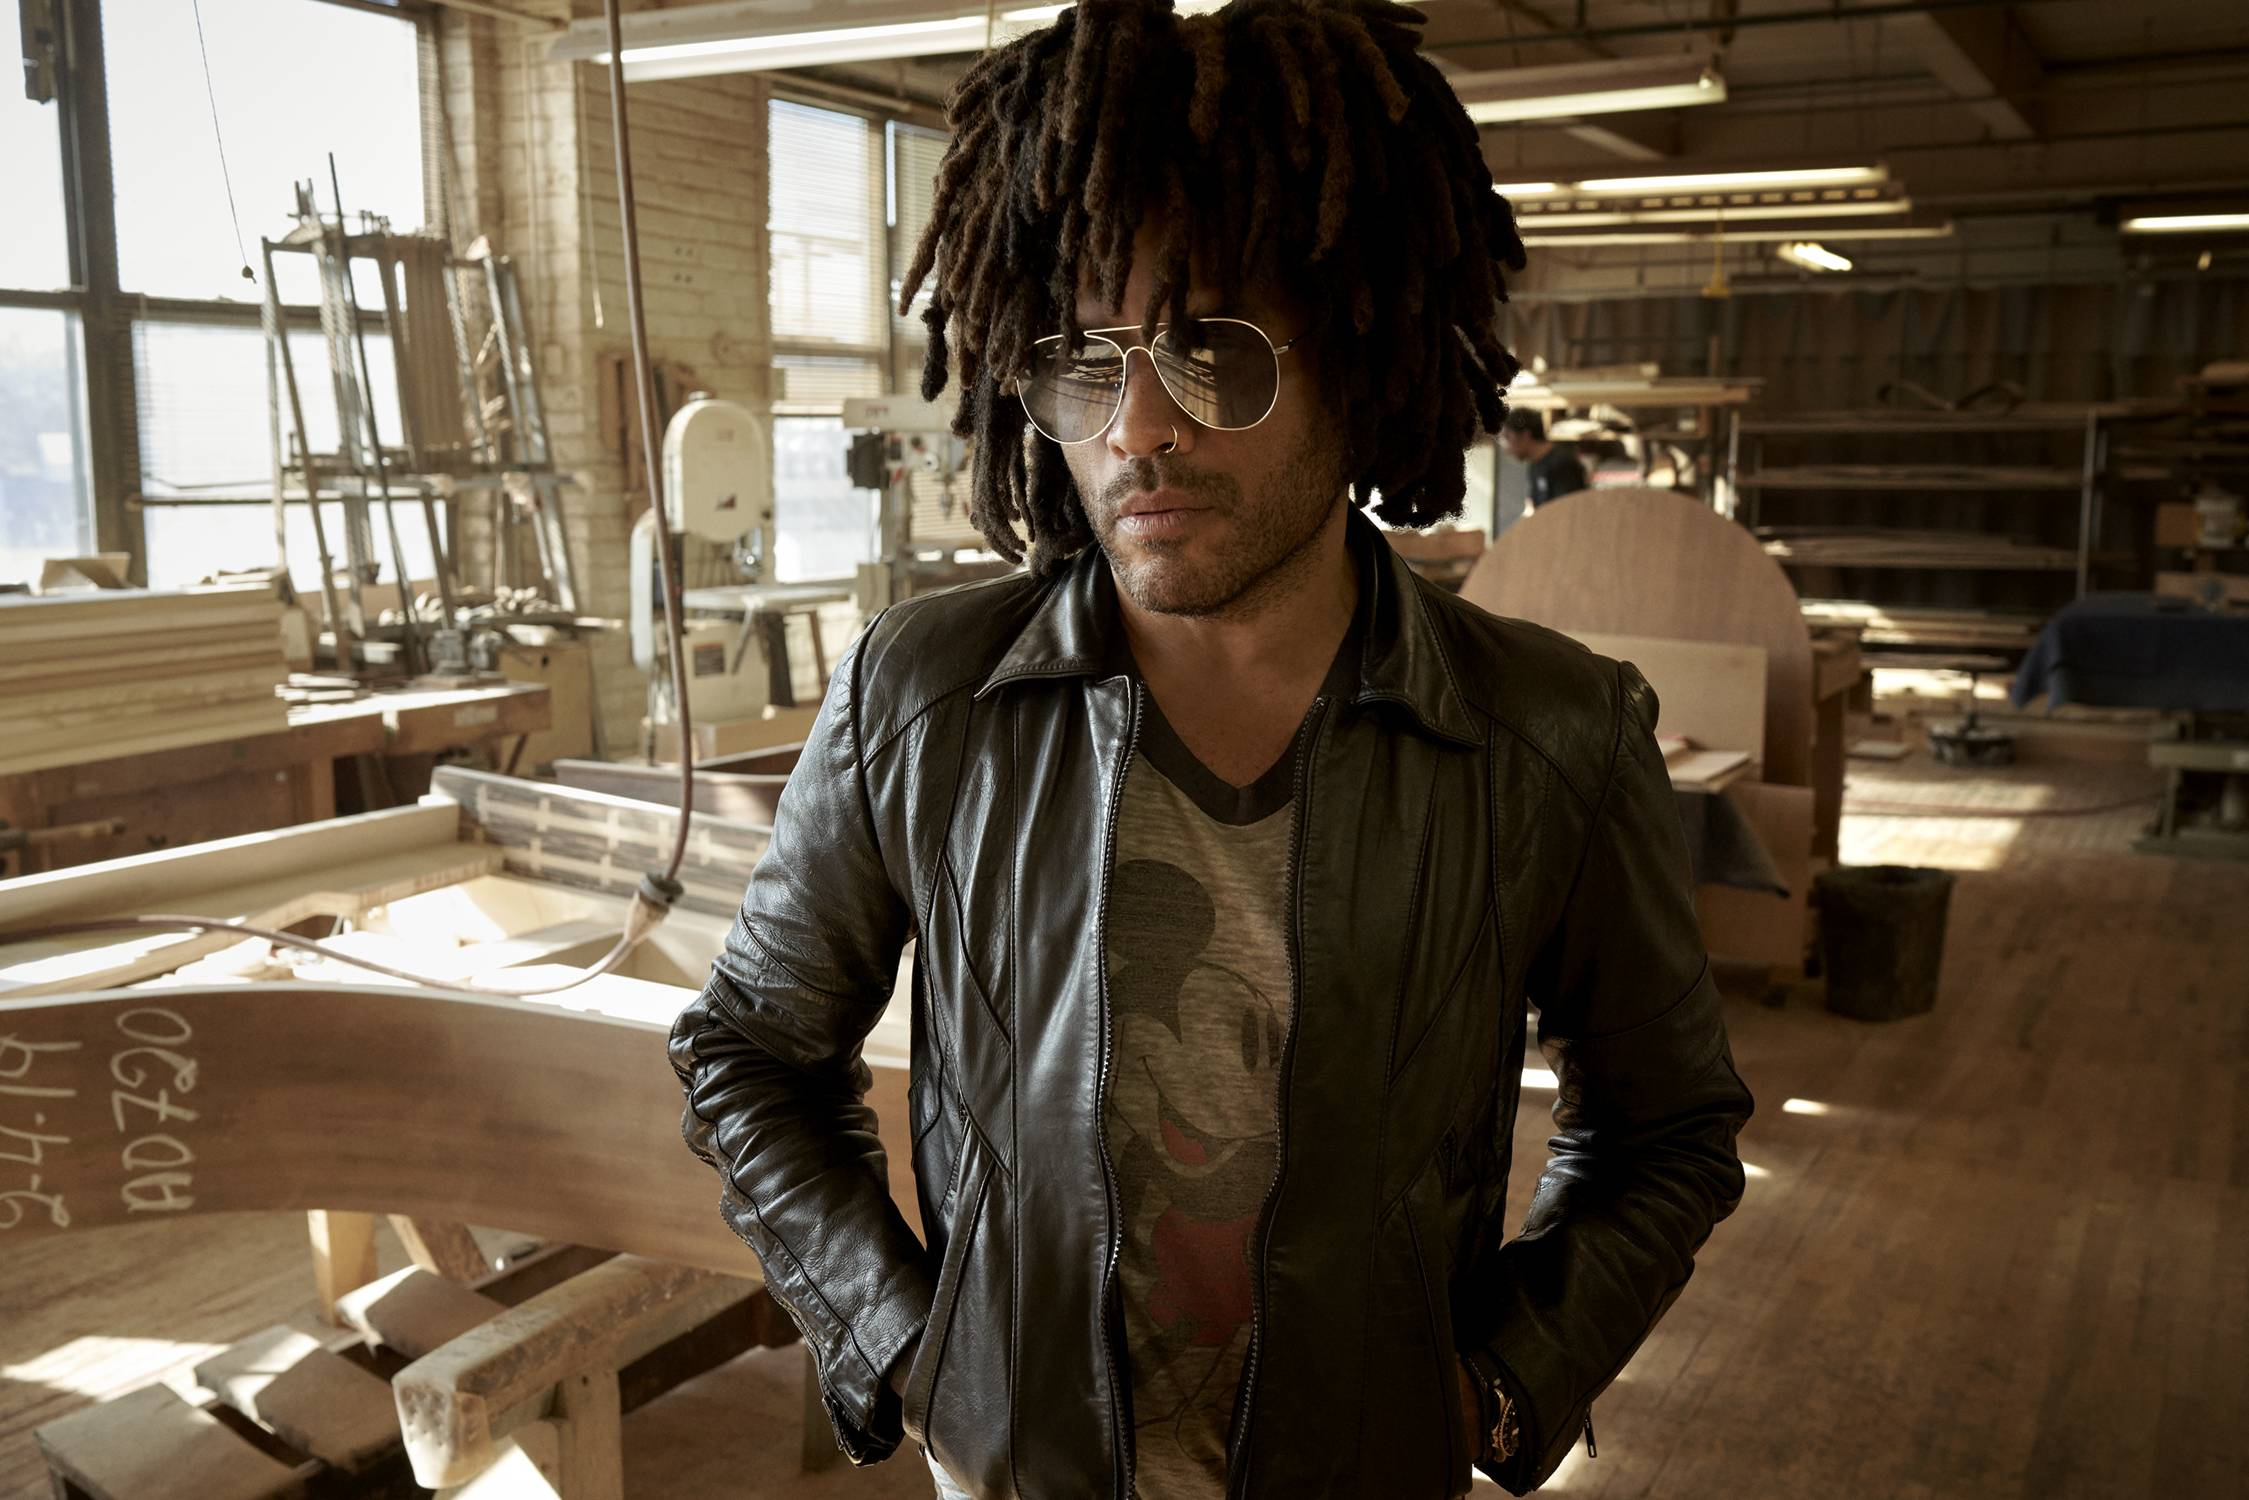 Lenny Kravitz's Steinway Piano collaboration